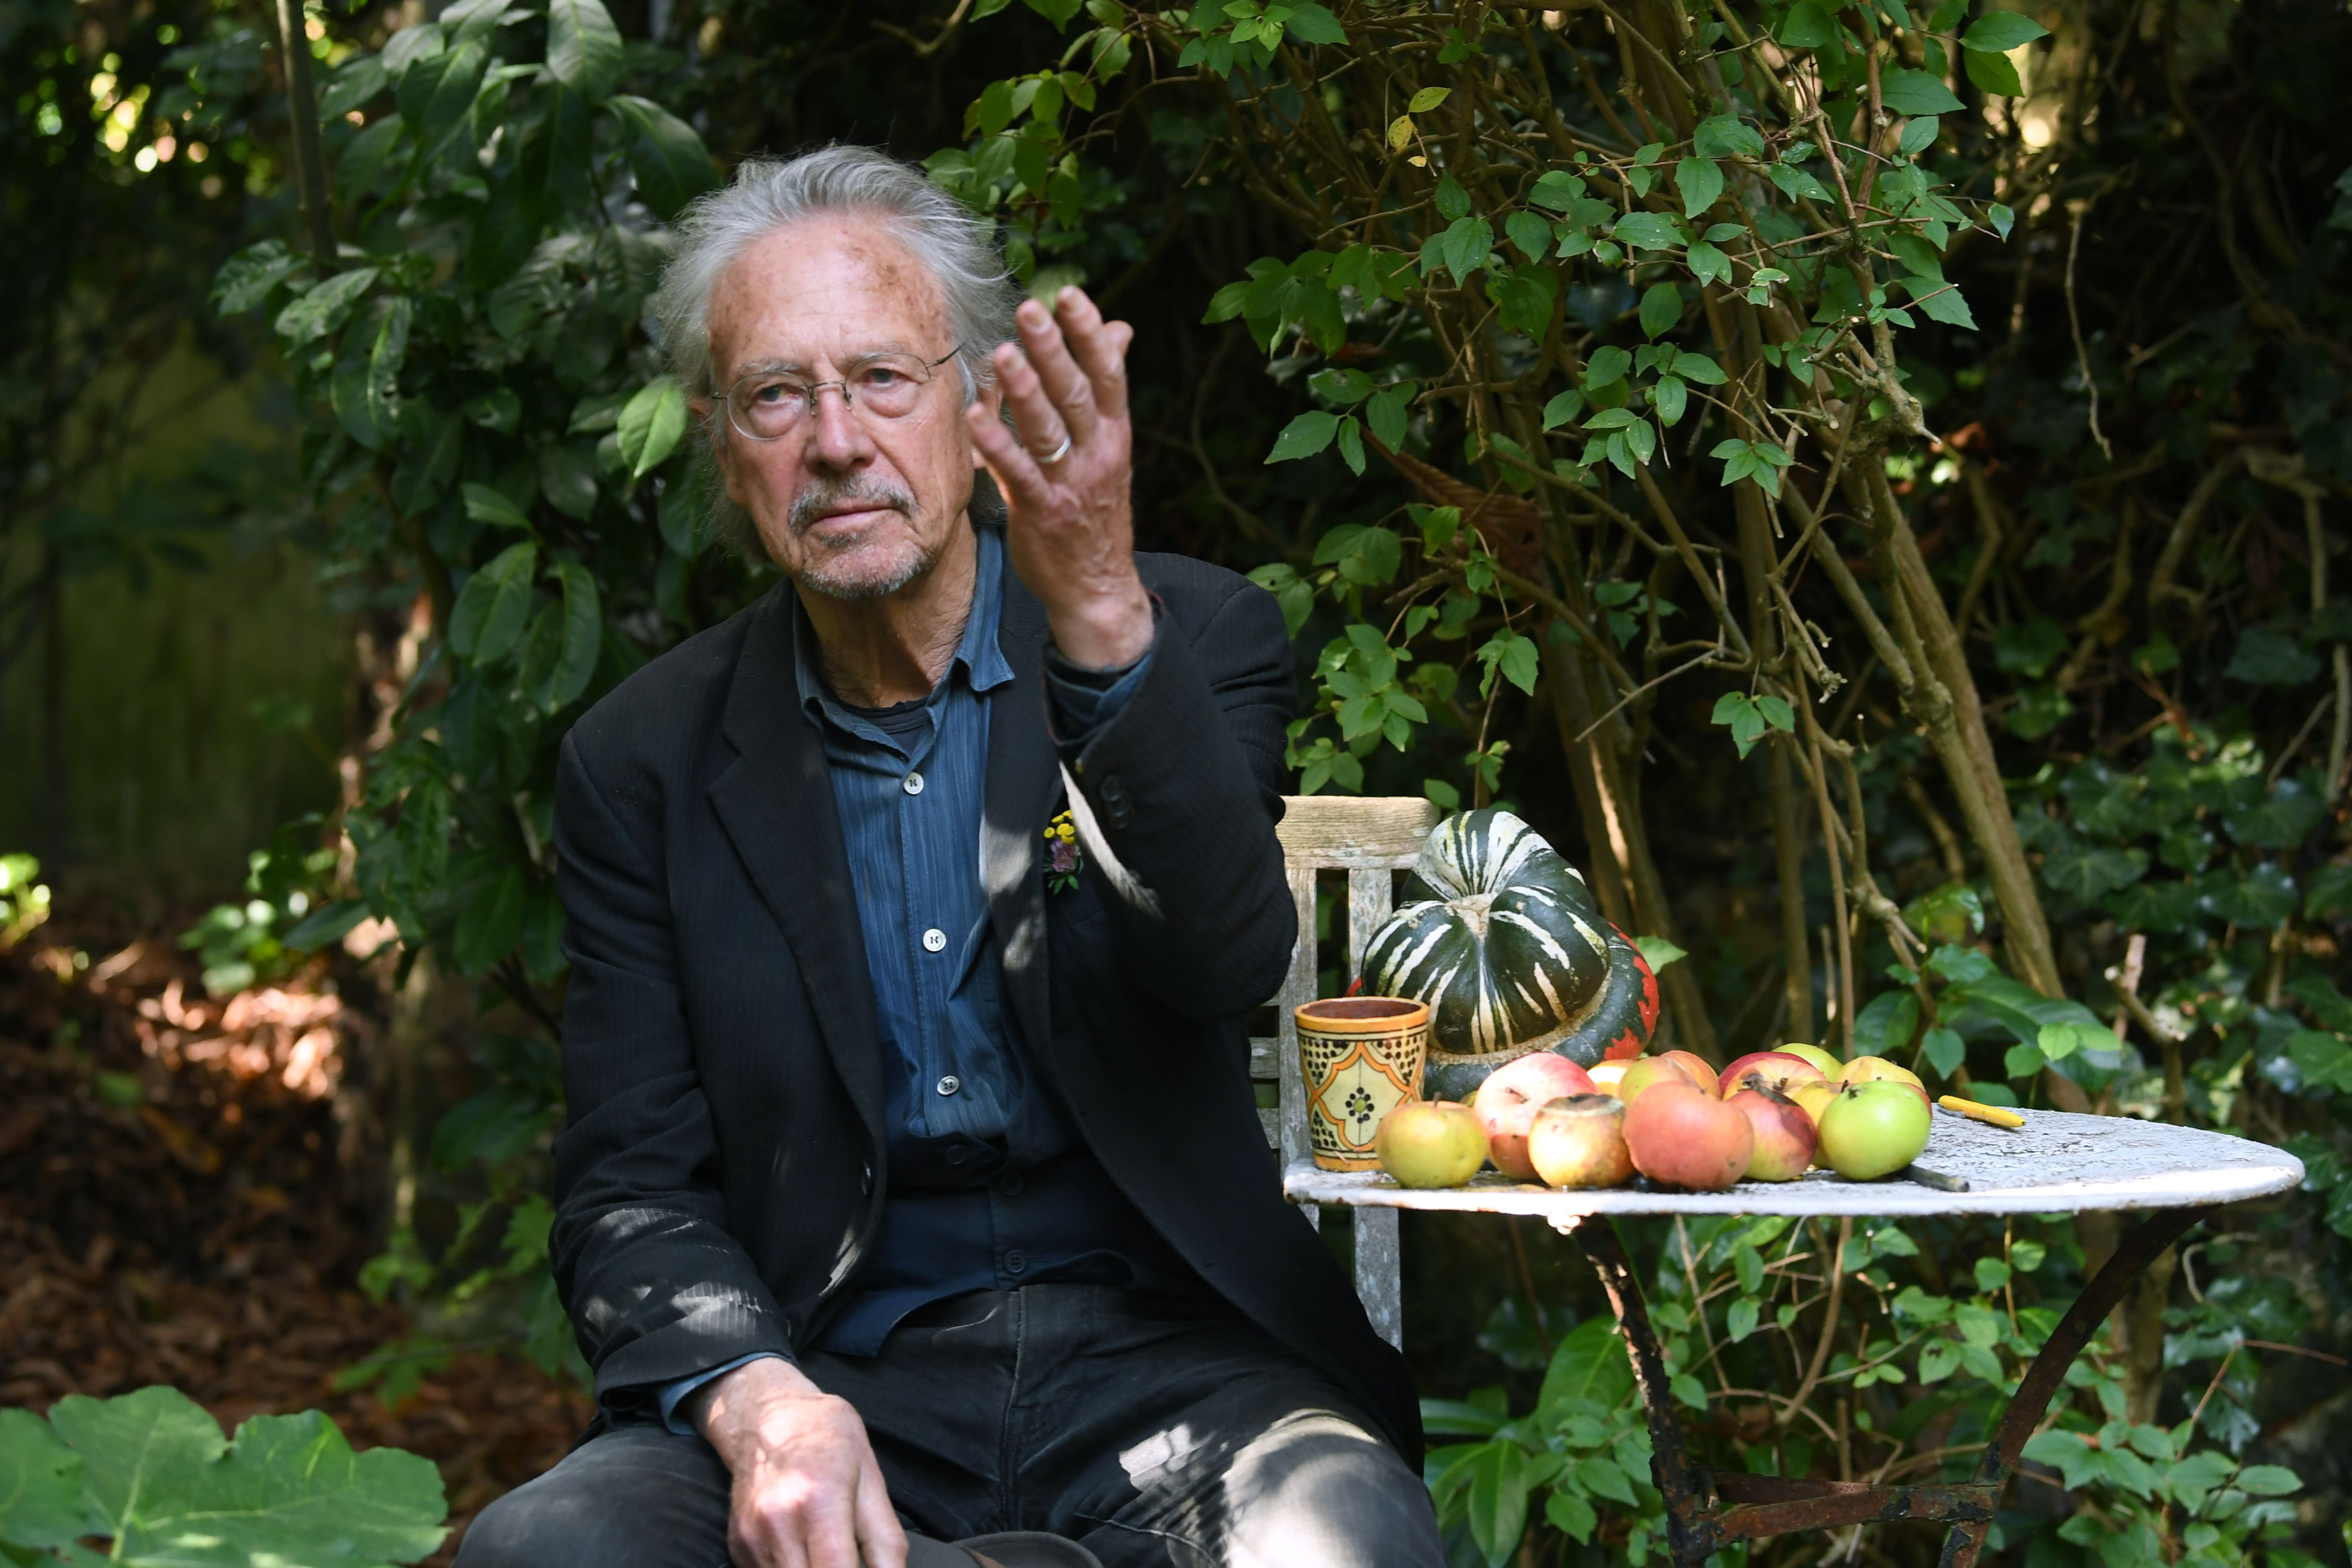 Peter Handke Tussles With Press in Days Leading Up to Nobel Prize Ceremony